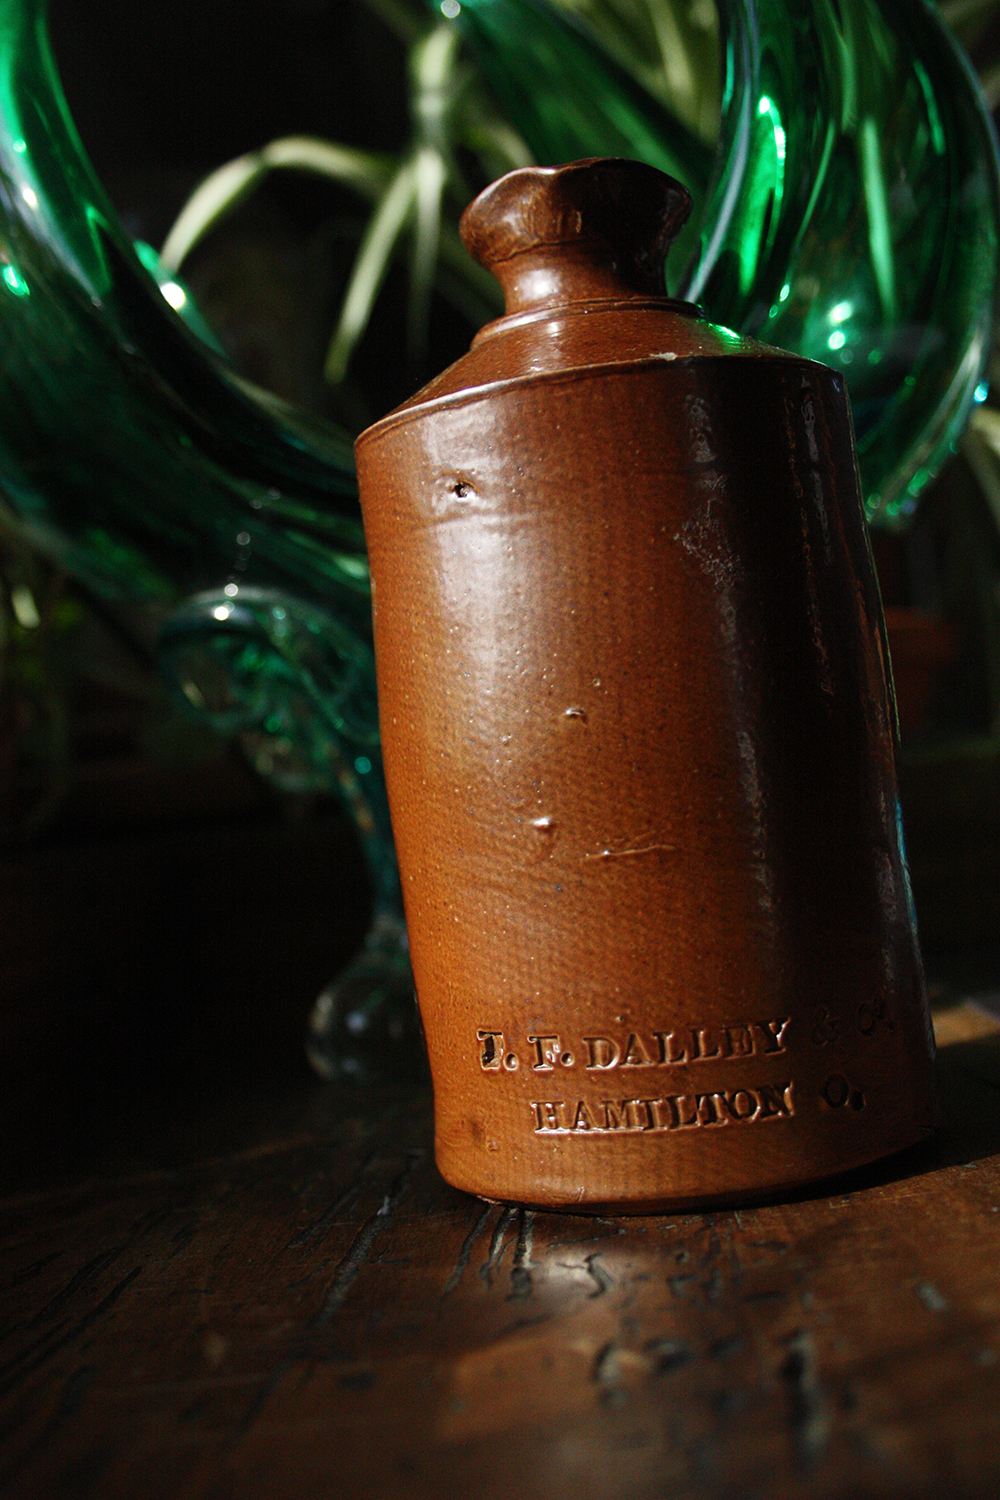 F.F. Dalley Jug